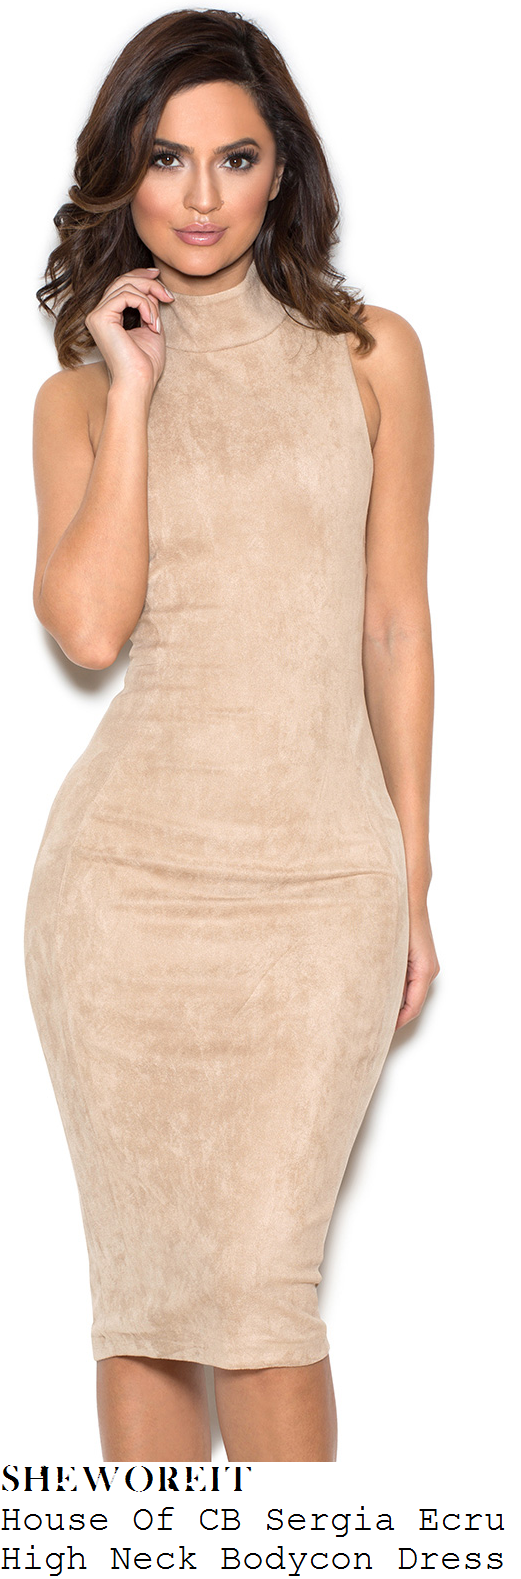 danielle-armstrong-house-of-cb-sergia-ecru-sand-high-neck-faux-suede-bodycon-dress